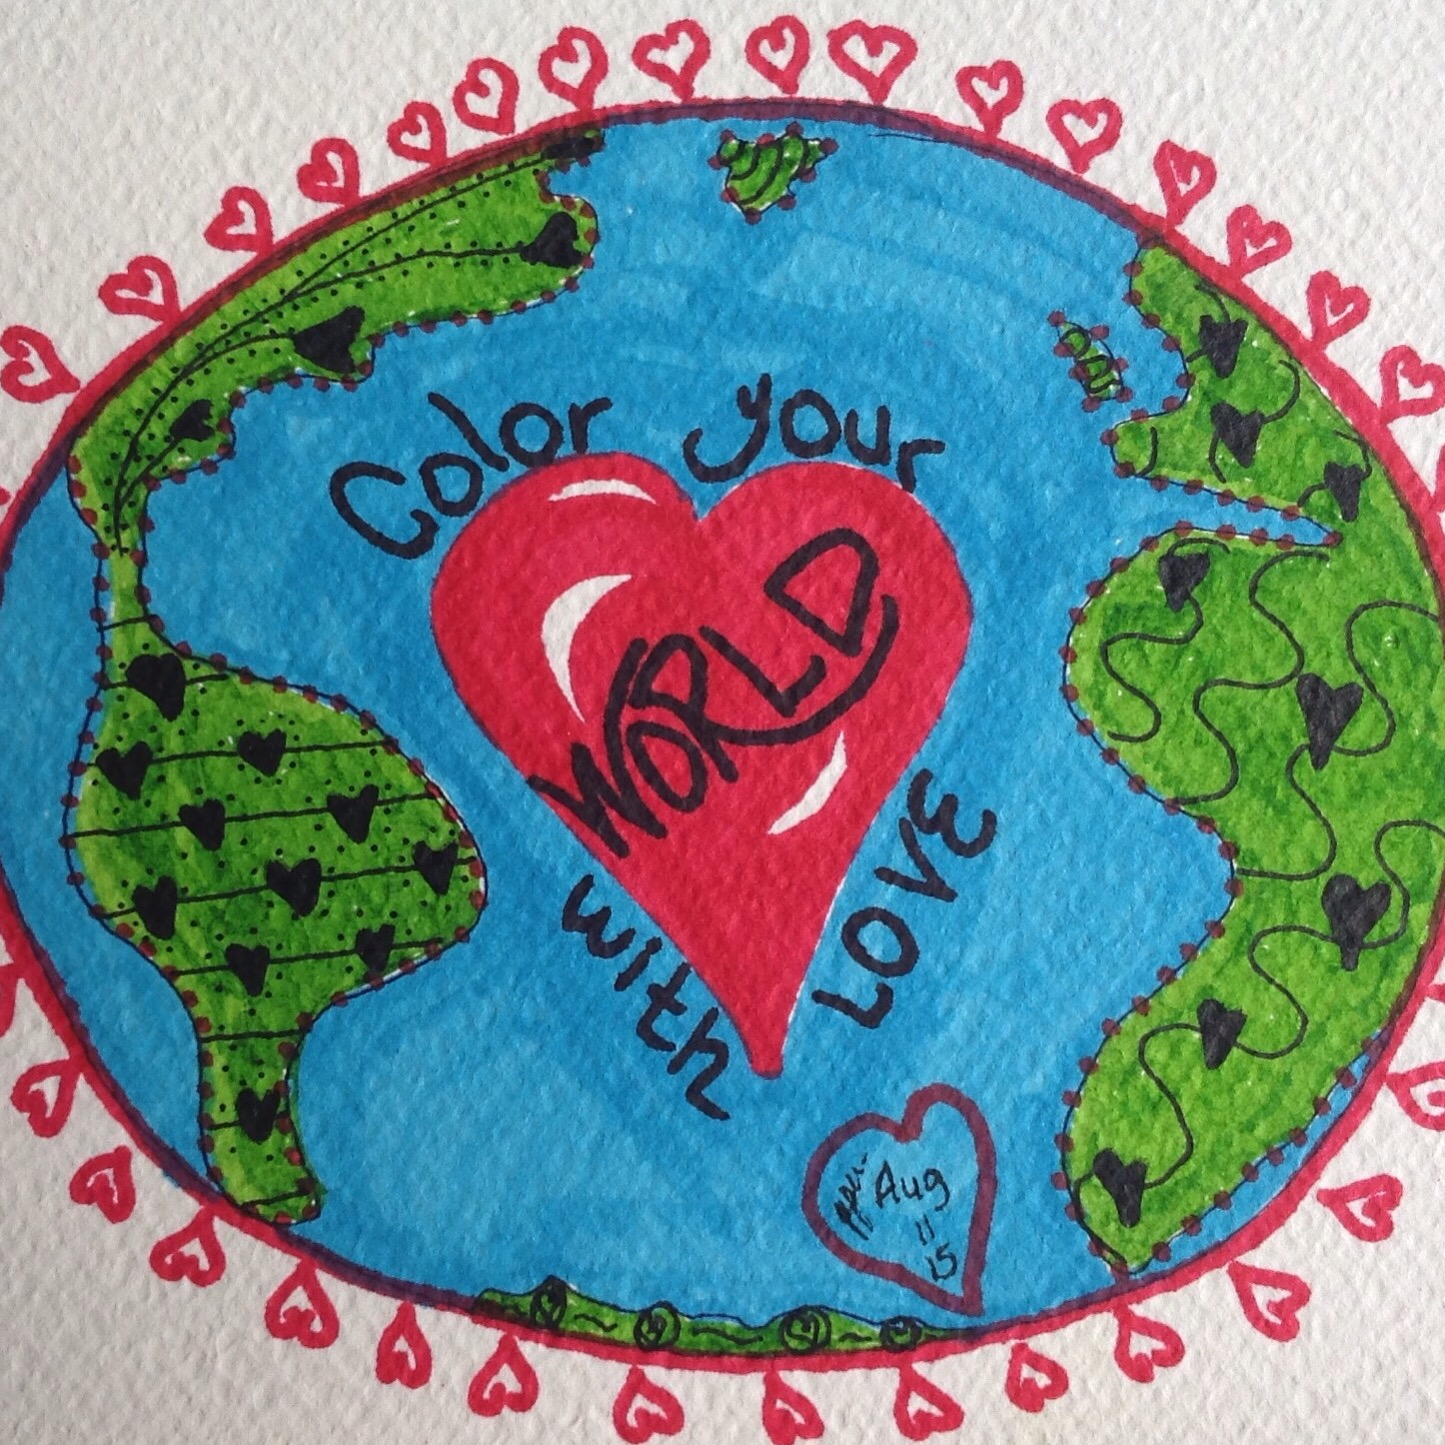 color your world with love casa de whimsy